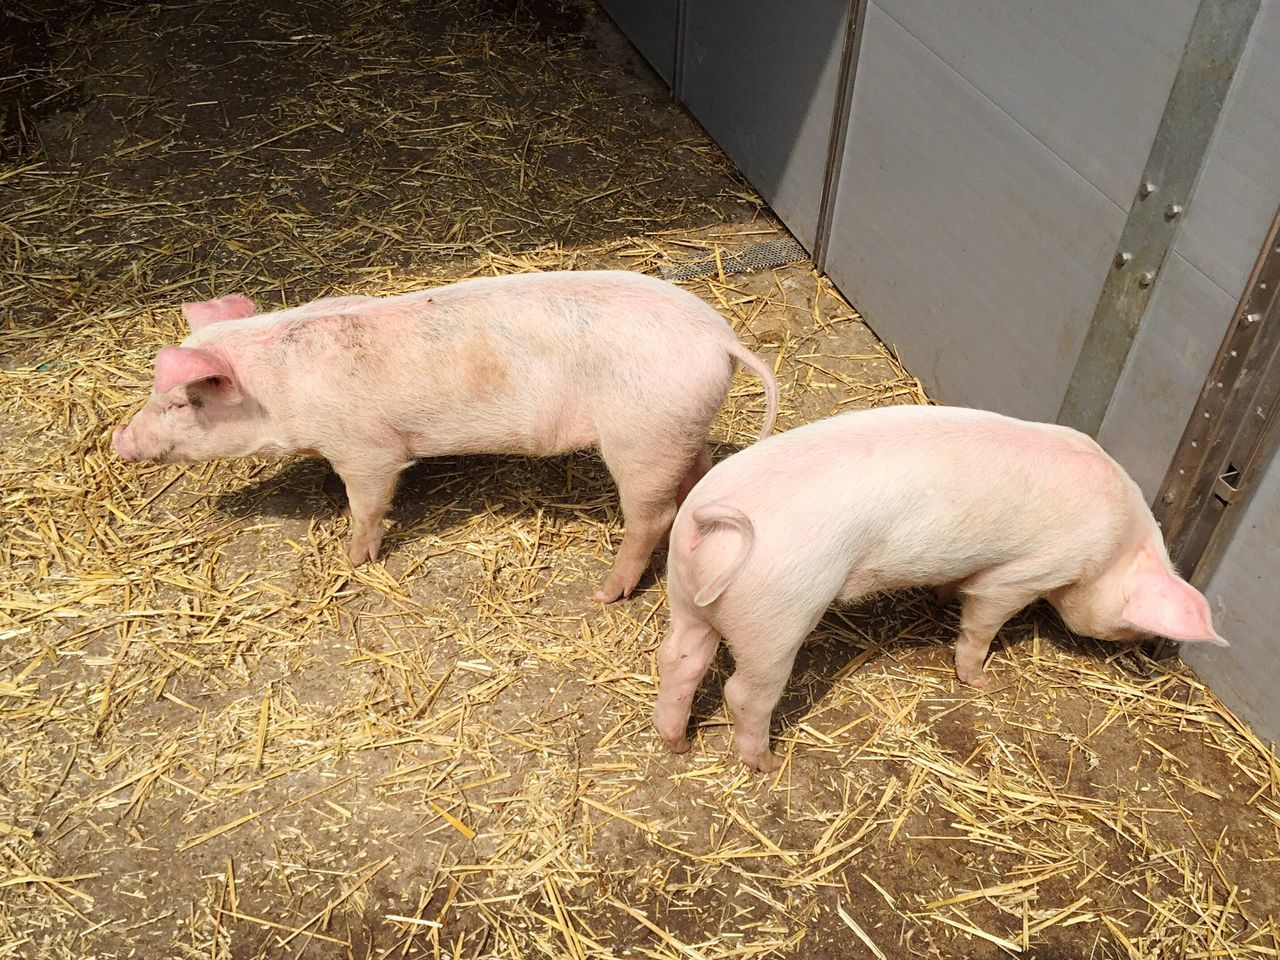 Pig Bait Nose Little Piglet Animals Feeding  Feeding Animals Young Animal Snout Young Sweet Chow Feed  Muzzle Farm Pig Stall Stall Pigsty Pink Animal Little Piglet Rosé Young Animal Hay